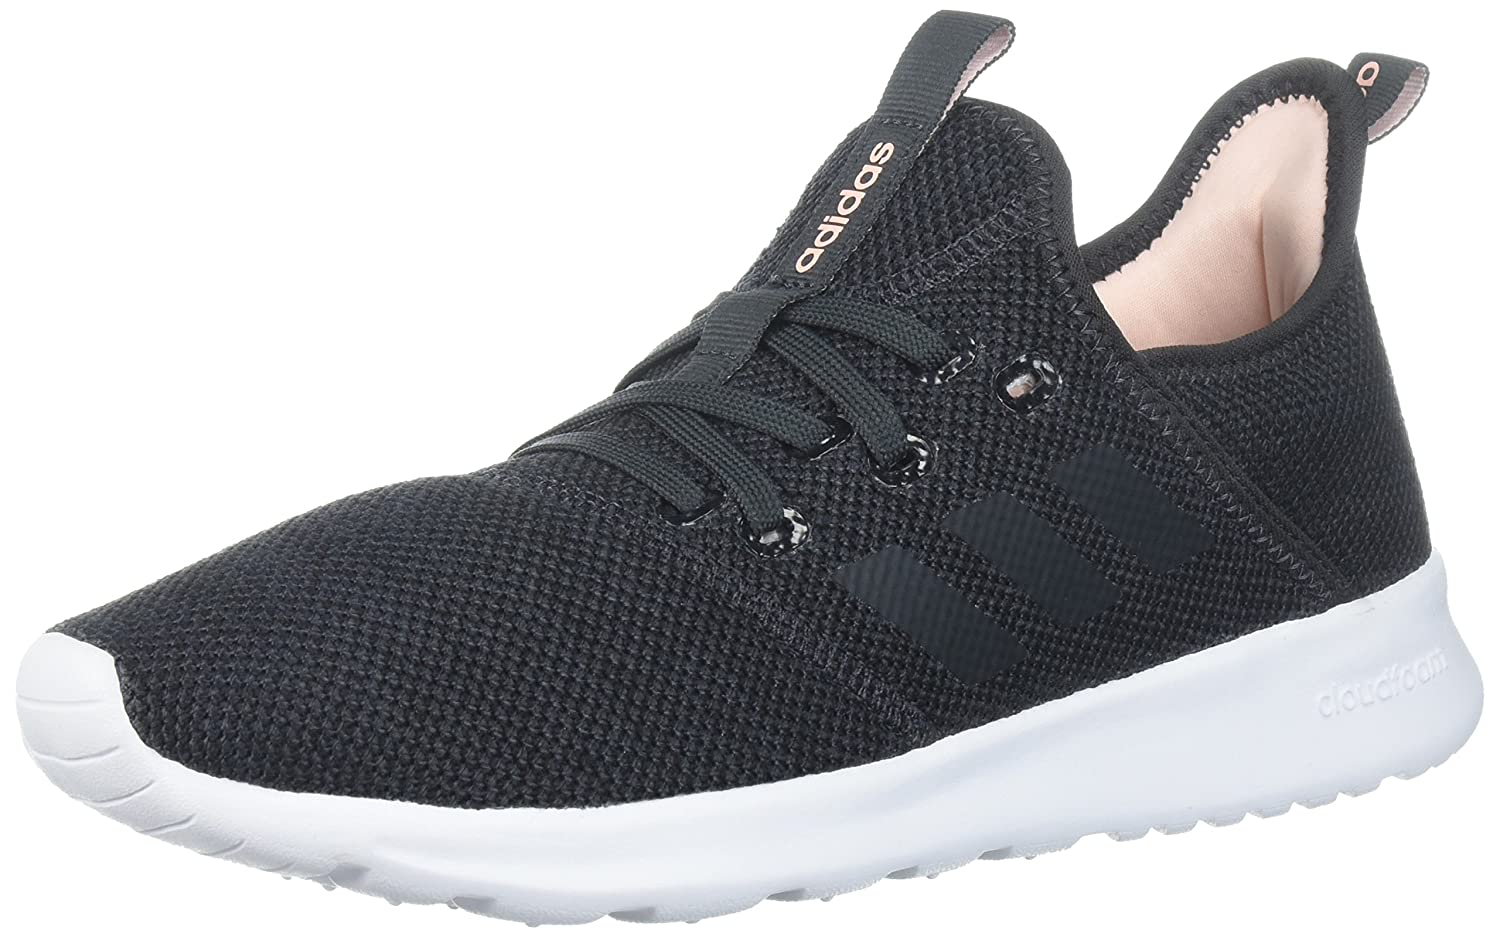 adidas Women's Cloudfoam Pure Running US|Carbon/Carbon Shoe B071P19D4B 6.5 B(M) US|Carbon/Carbon Running 48676b